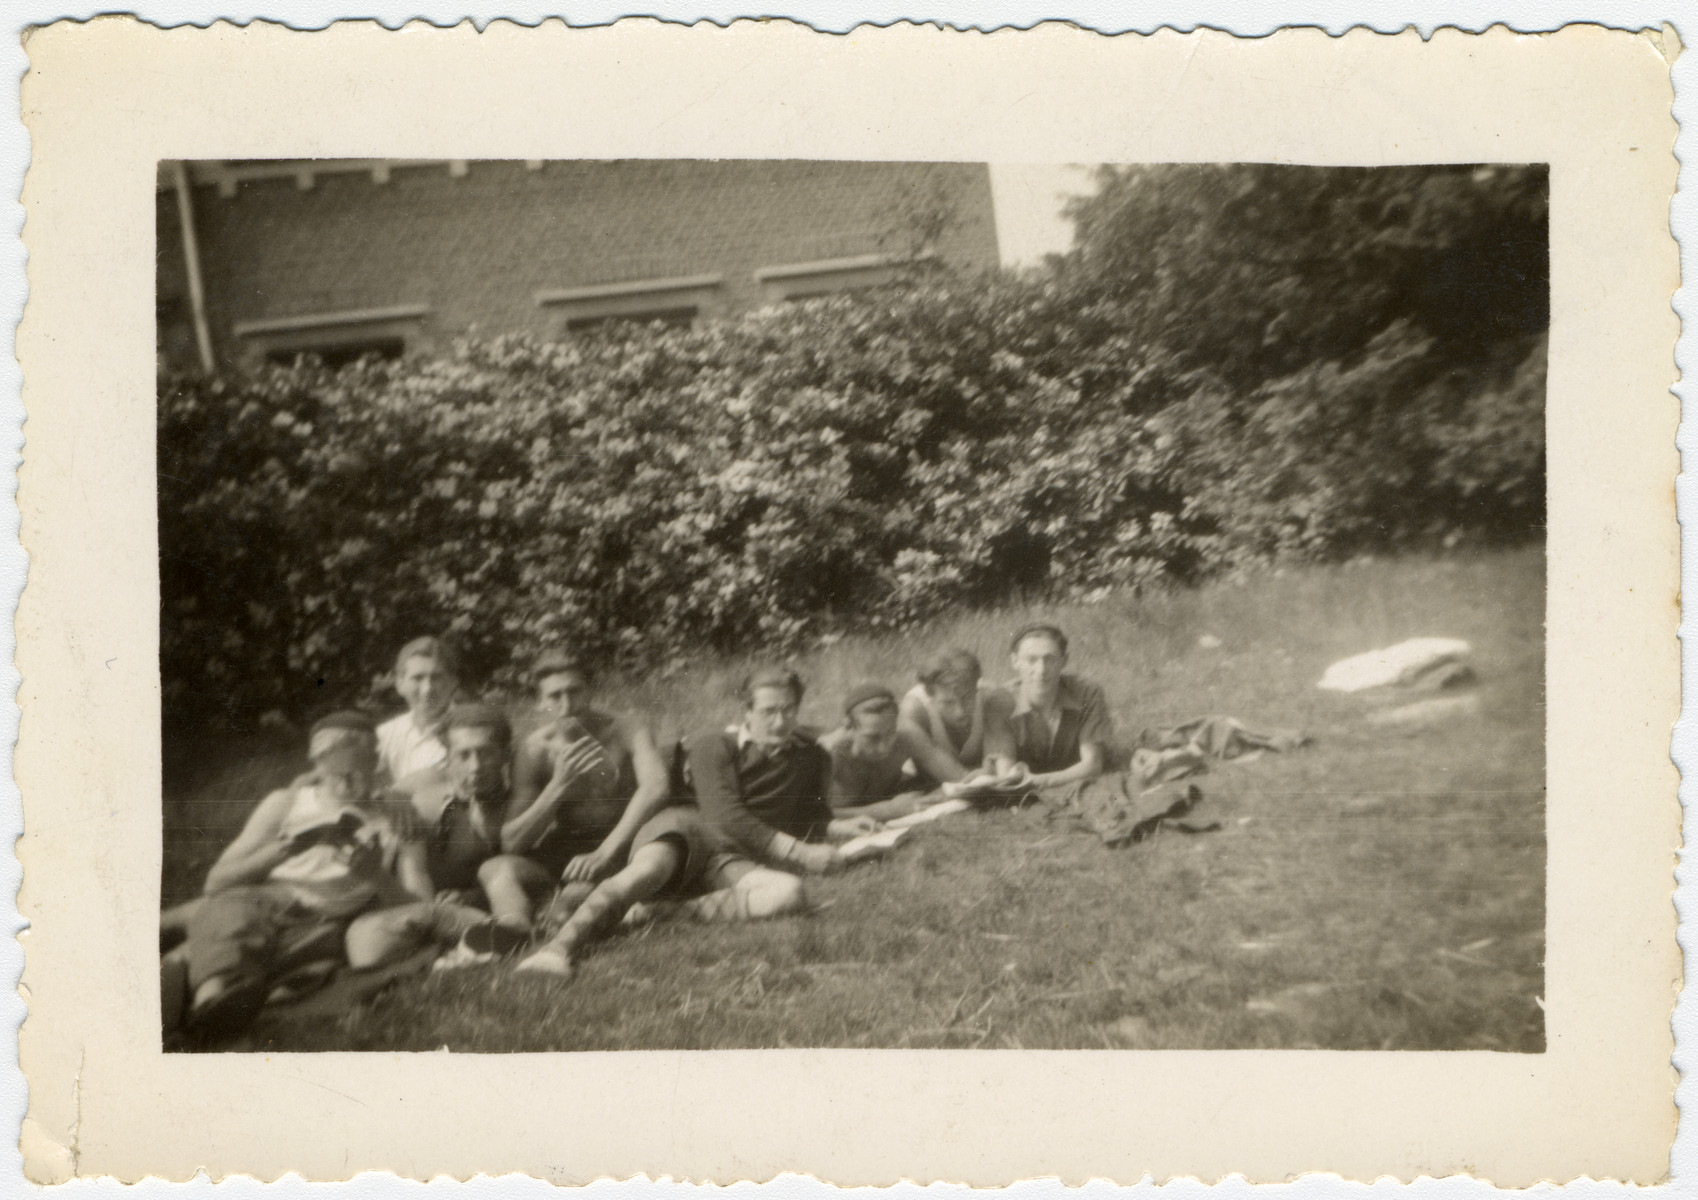 Belgian Jewish youth relax on the grounds of La Ramee, an agricultural training school.  The school was established after Jewish students were expelled from general schools  and directed by Haroun Tazieff.